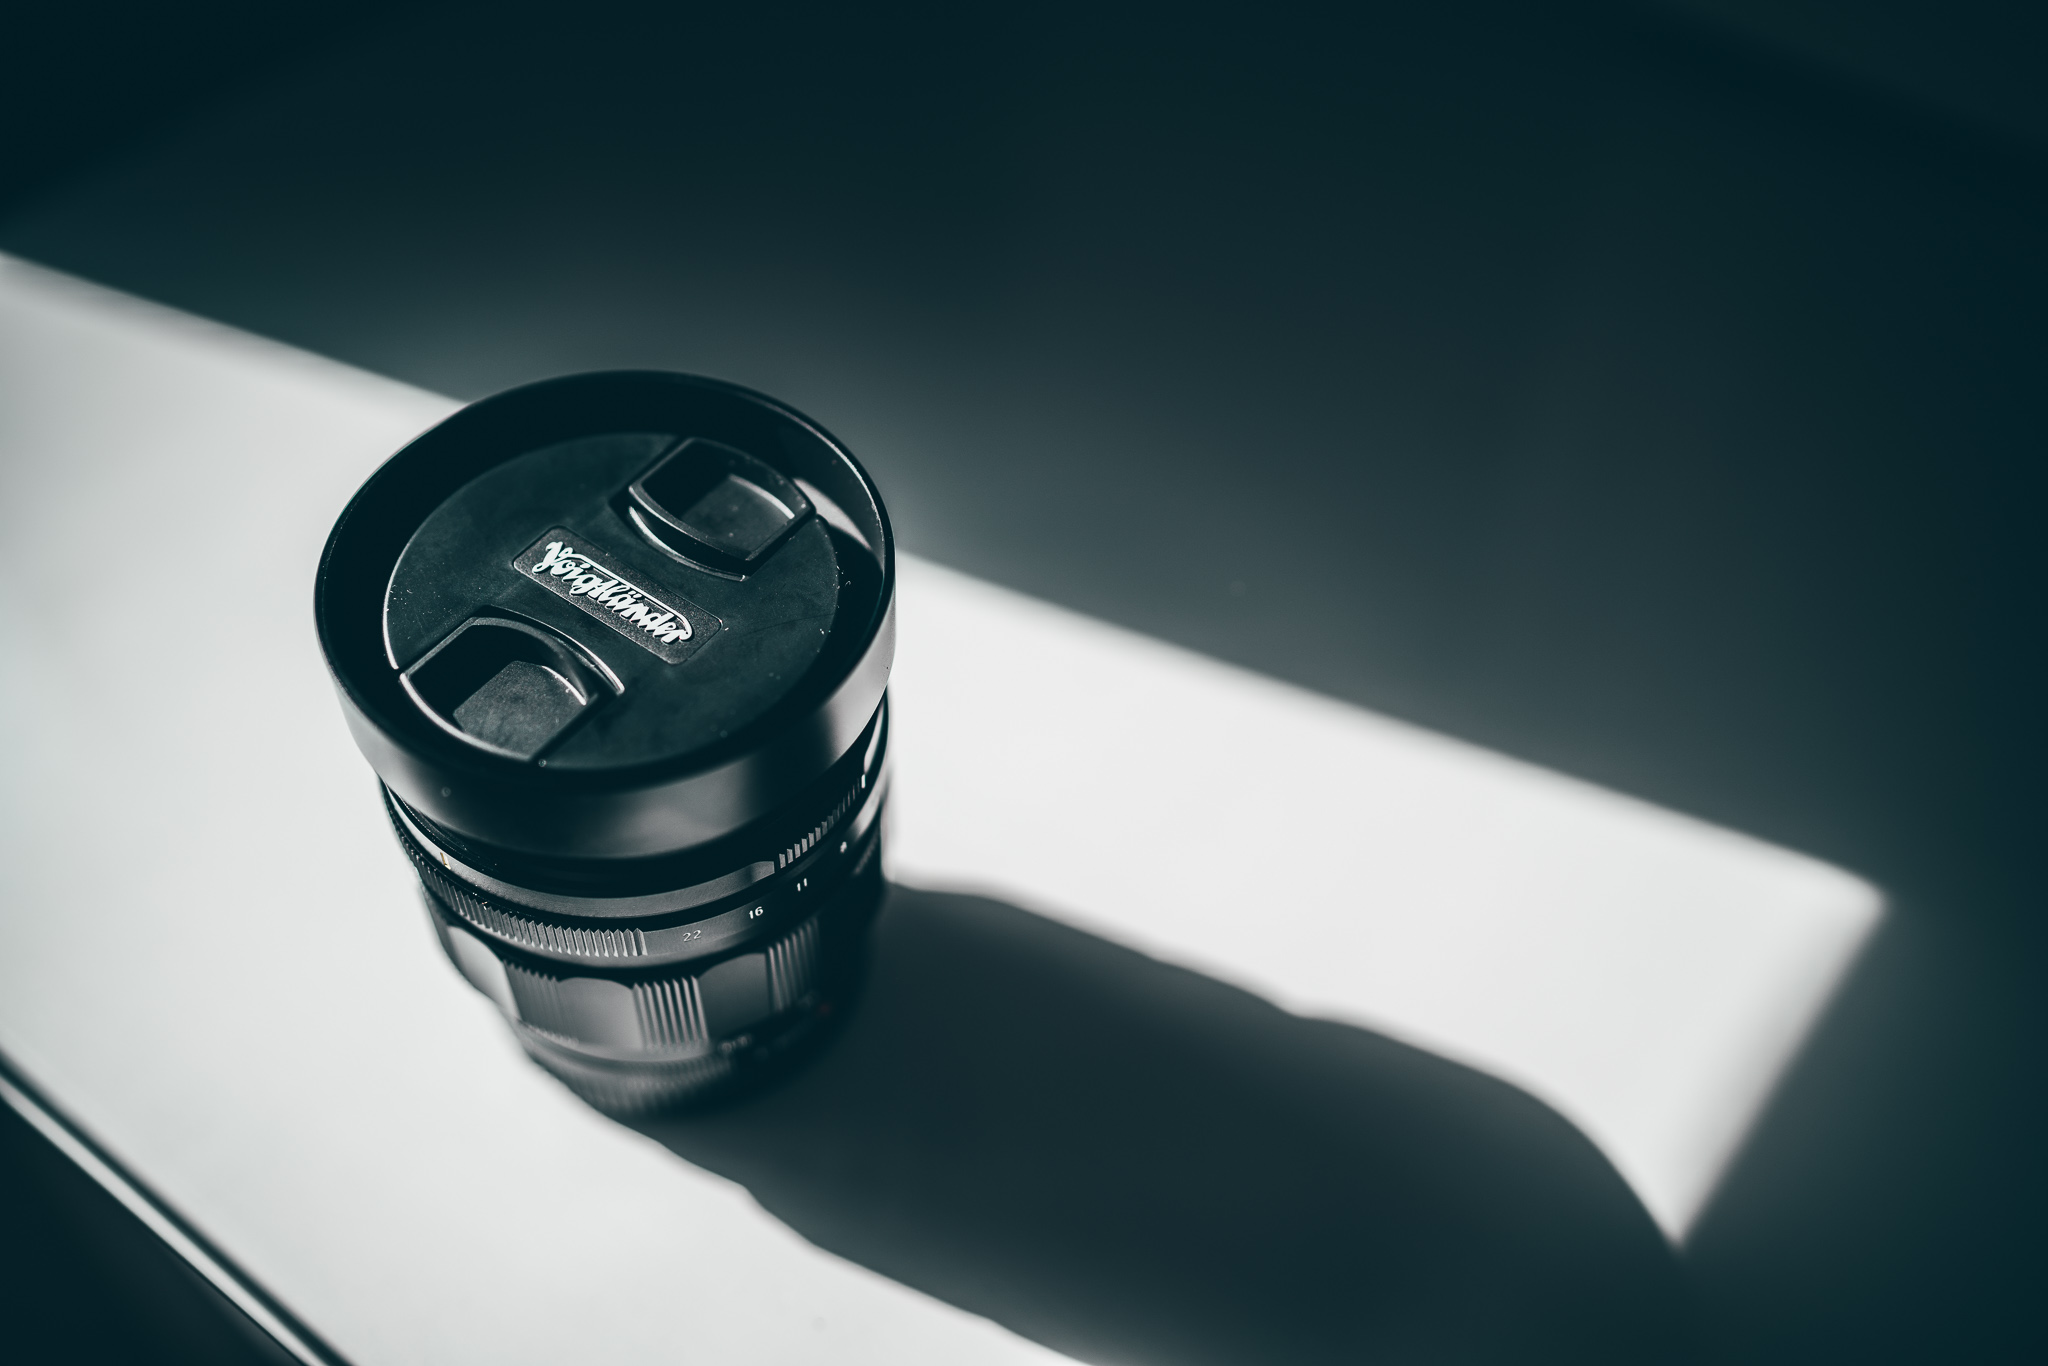 The Voigtlander 40mm f1.2